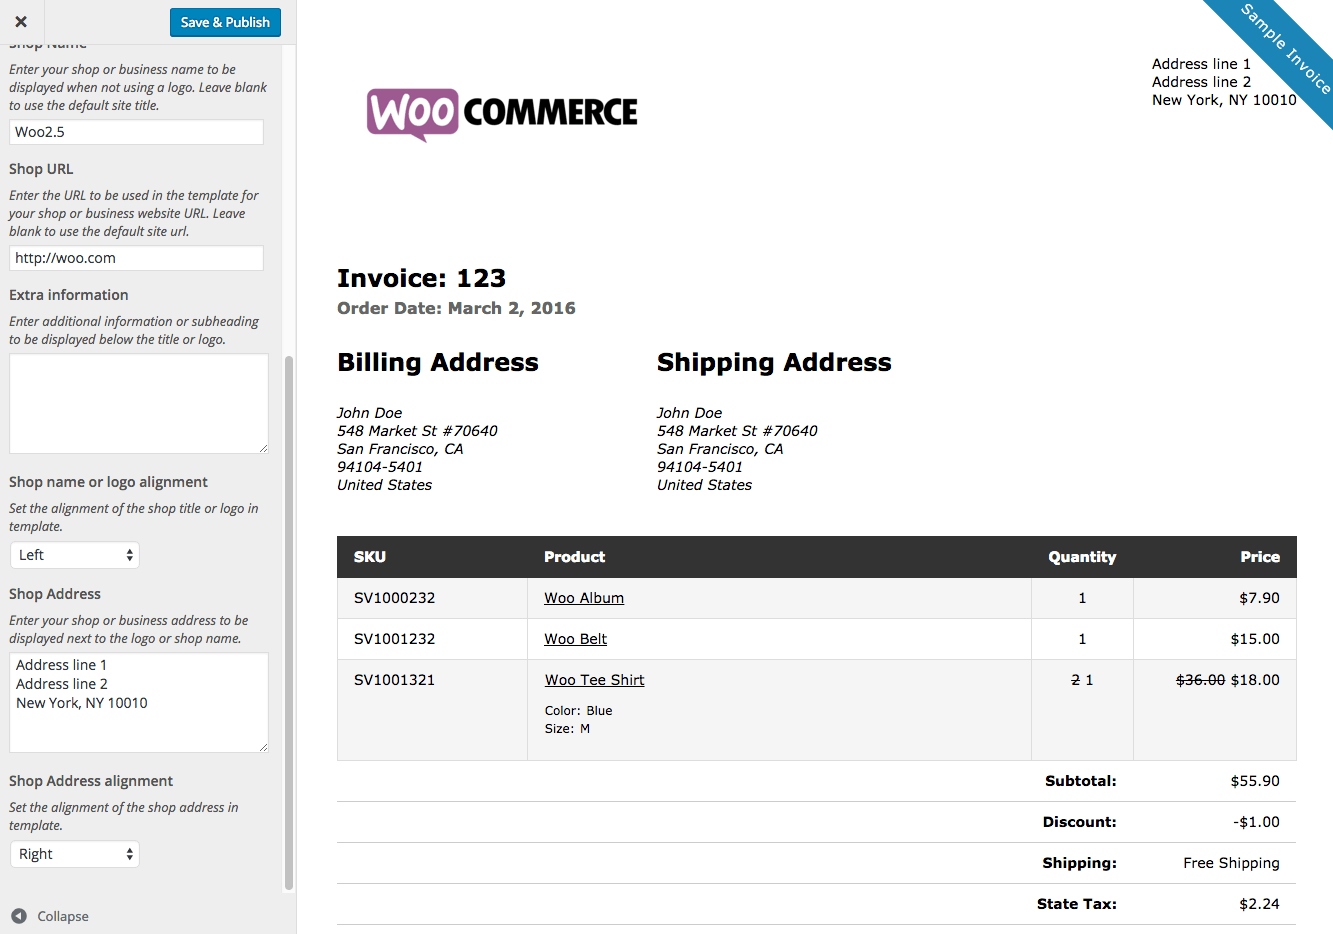 Modaoxus  Unusual Print Invoices Amp Packing Lists  Woocommerce With Hot Woocommerce Print Invoices  Packing Lists Customizer With Delightful Sample Copy Of Proforma Invoice Also Us Commercial Invoice In Addition Free Invoicing Service And Proforma Invoice Generator As Well As Sales Invoice Template Excel Free Download Additionally Current Invoice From Woocommercecom With Modaoxus  Hot Print Invoices Amp Packing Lists  Woocommerce With Delightful Woocommerce Print Invoices  Packing Lists Customizer And Unusual Sample Copy Of Proforma Invoice Also Us Commercial Invoice In Addition Free Invoicing Service From Woocommercecom